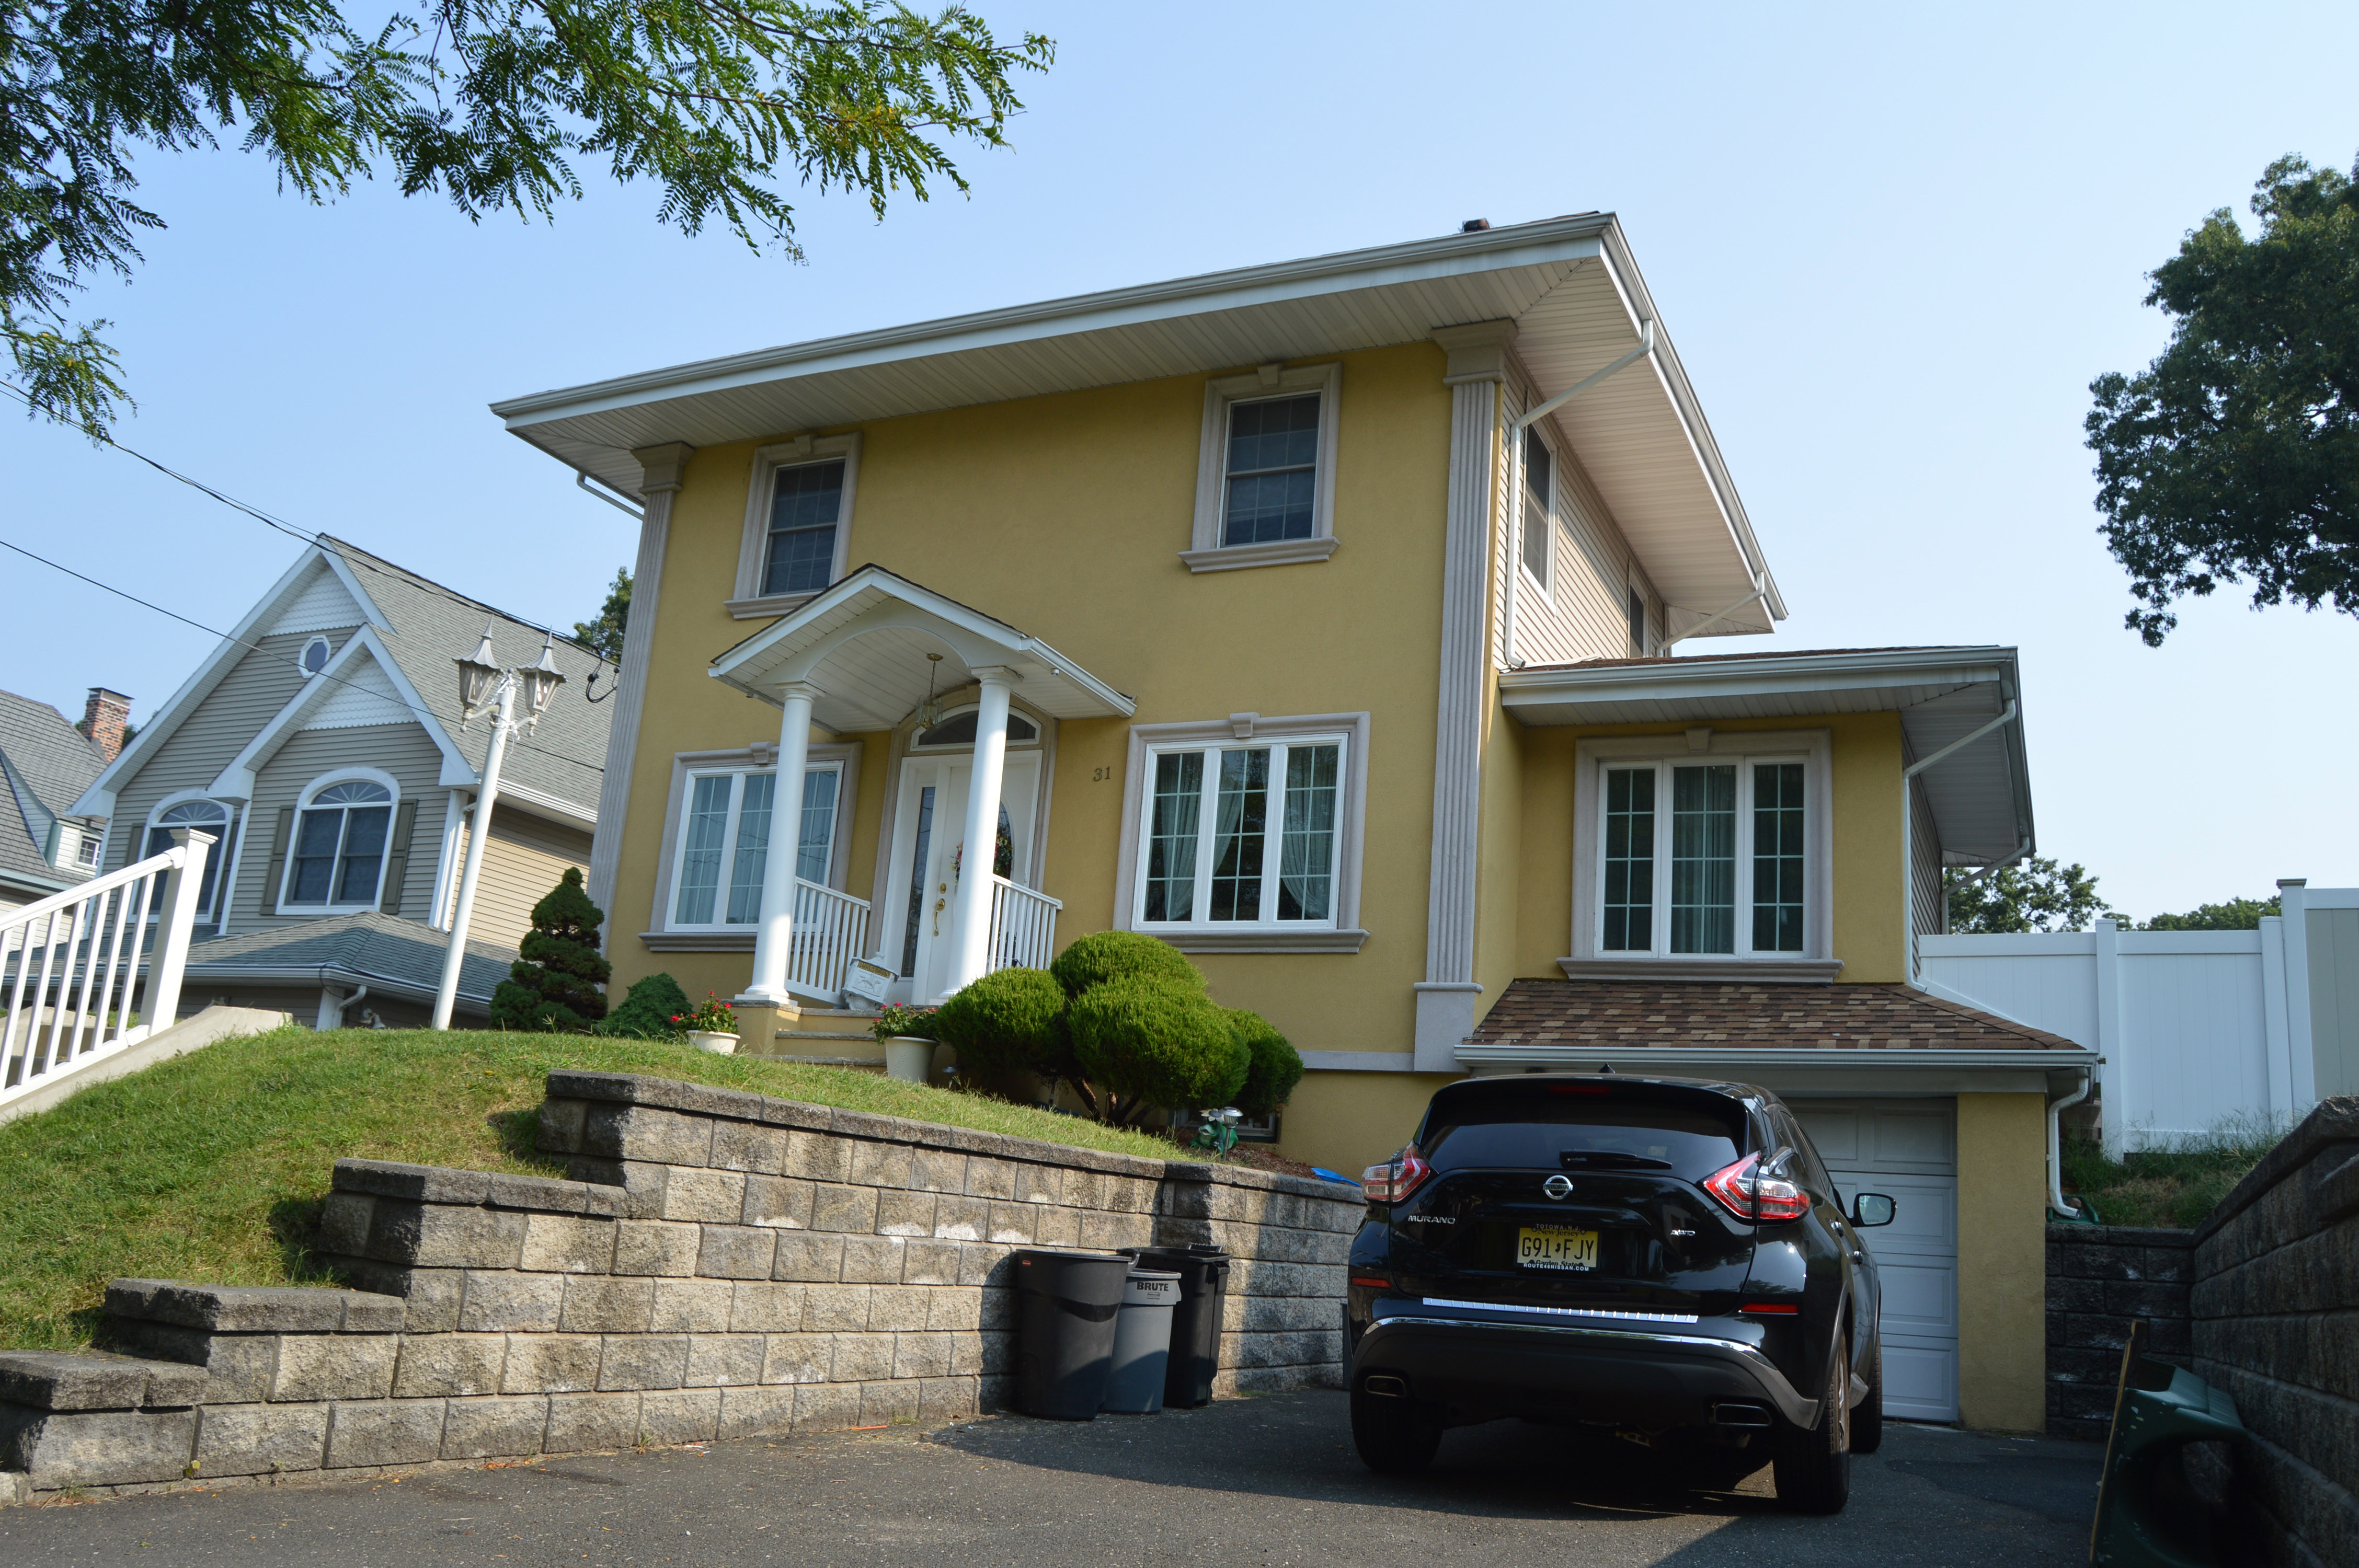 31 Kipp Ave, Hasbrouck Heights, New Jersey 07604